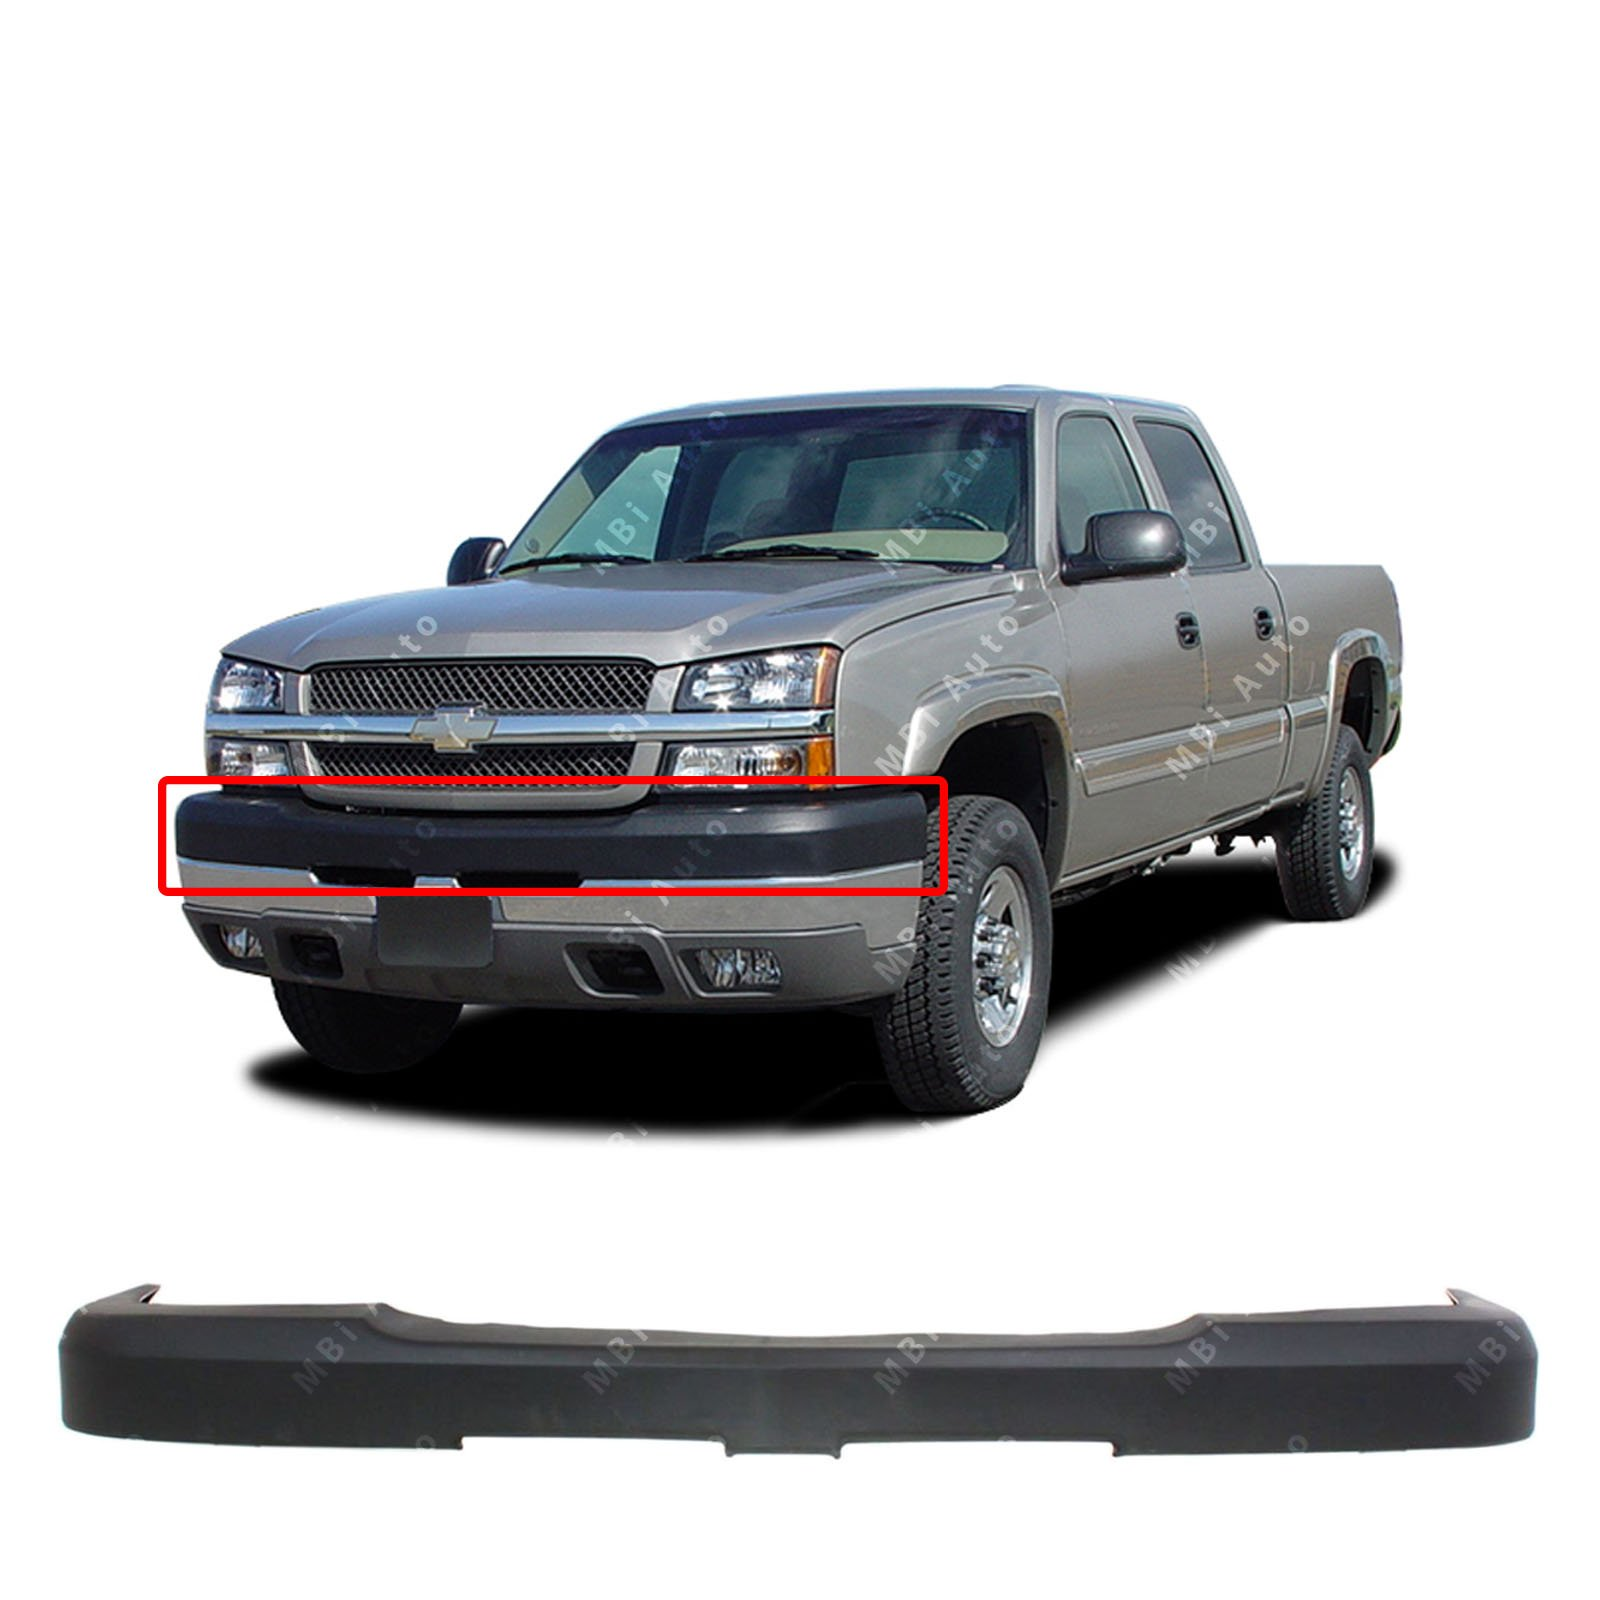 MBI AUTO - Textured, Black Front Bumper Top Cover for 2003 2004 2005 2006 2007 Chevy Silverado 2500/3500 Heavy Duty Pickup 03-07, GM1051109